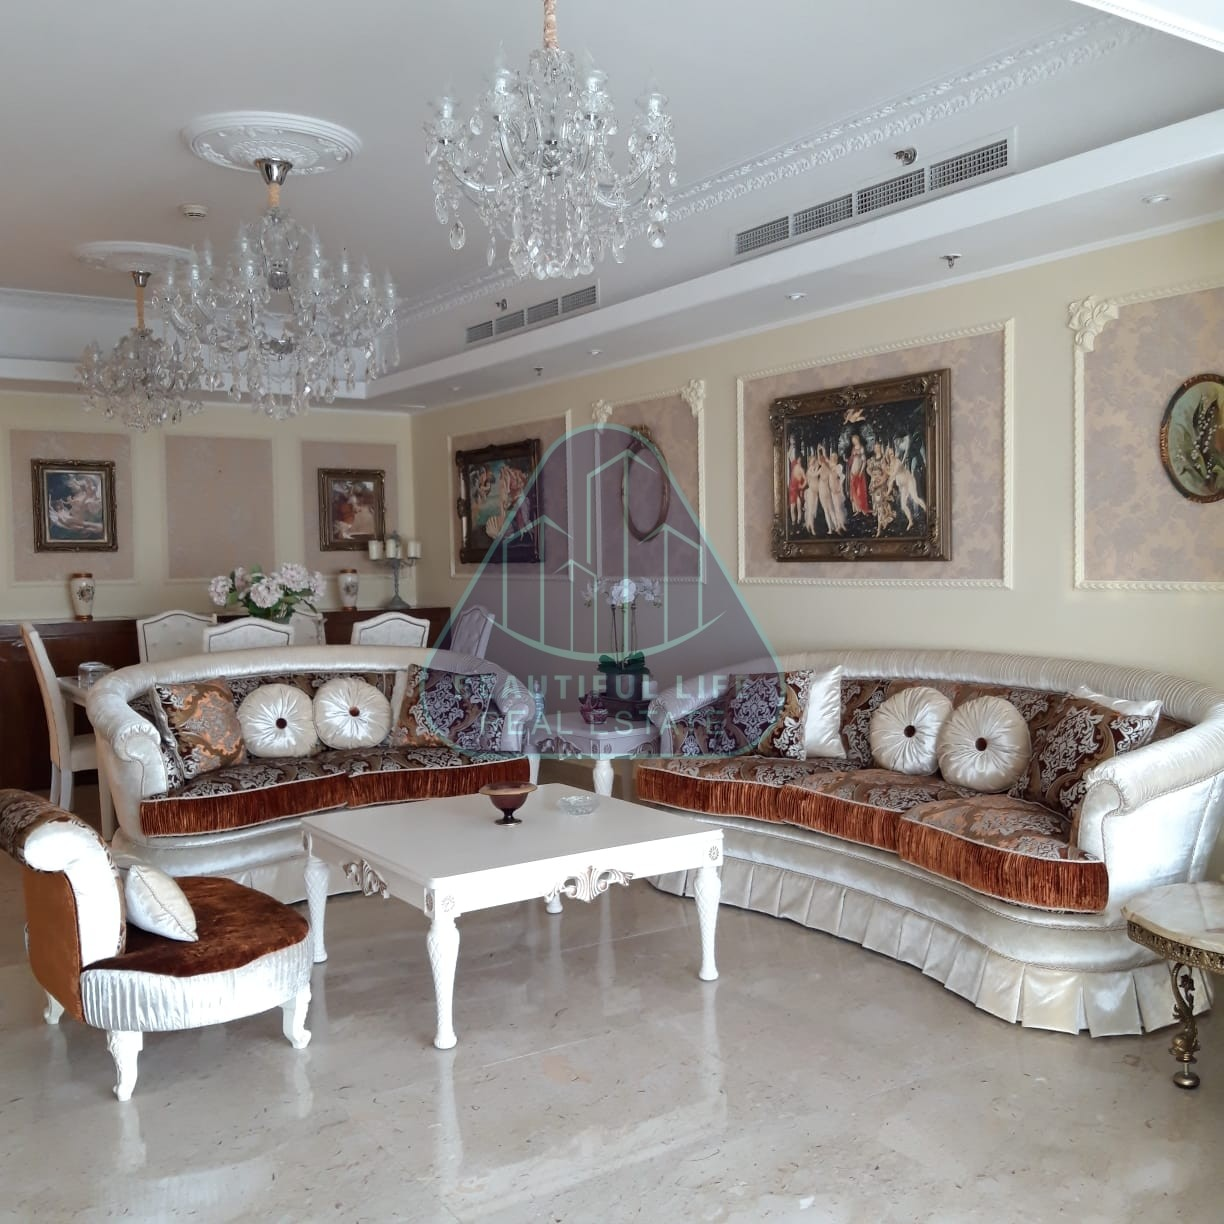 Full Sea View | Spacious 3BR | Fully Furnished | Bright Unit